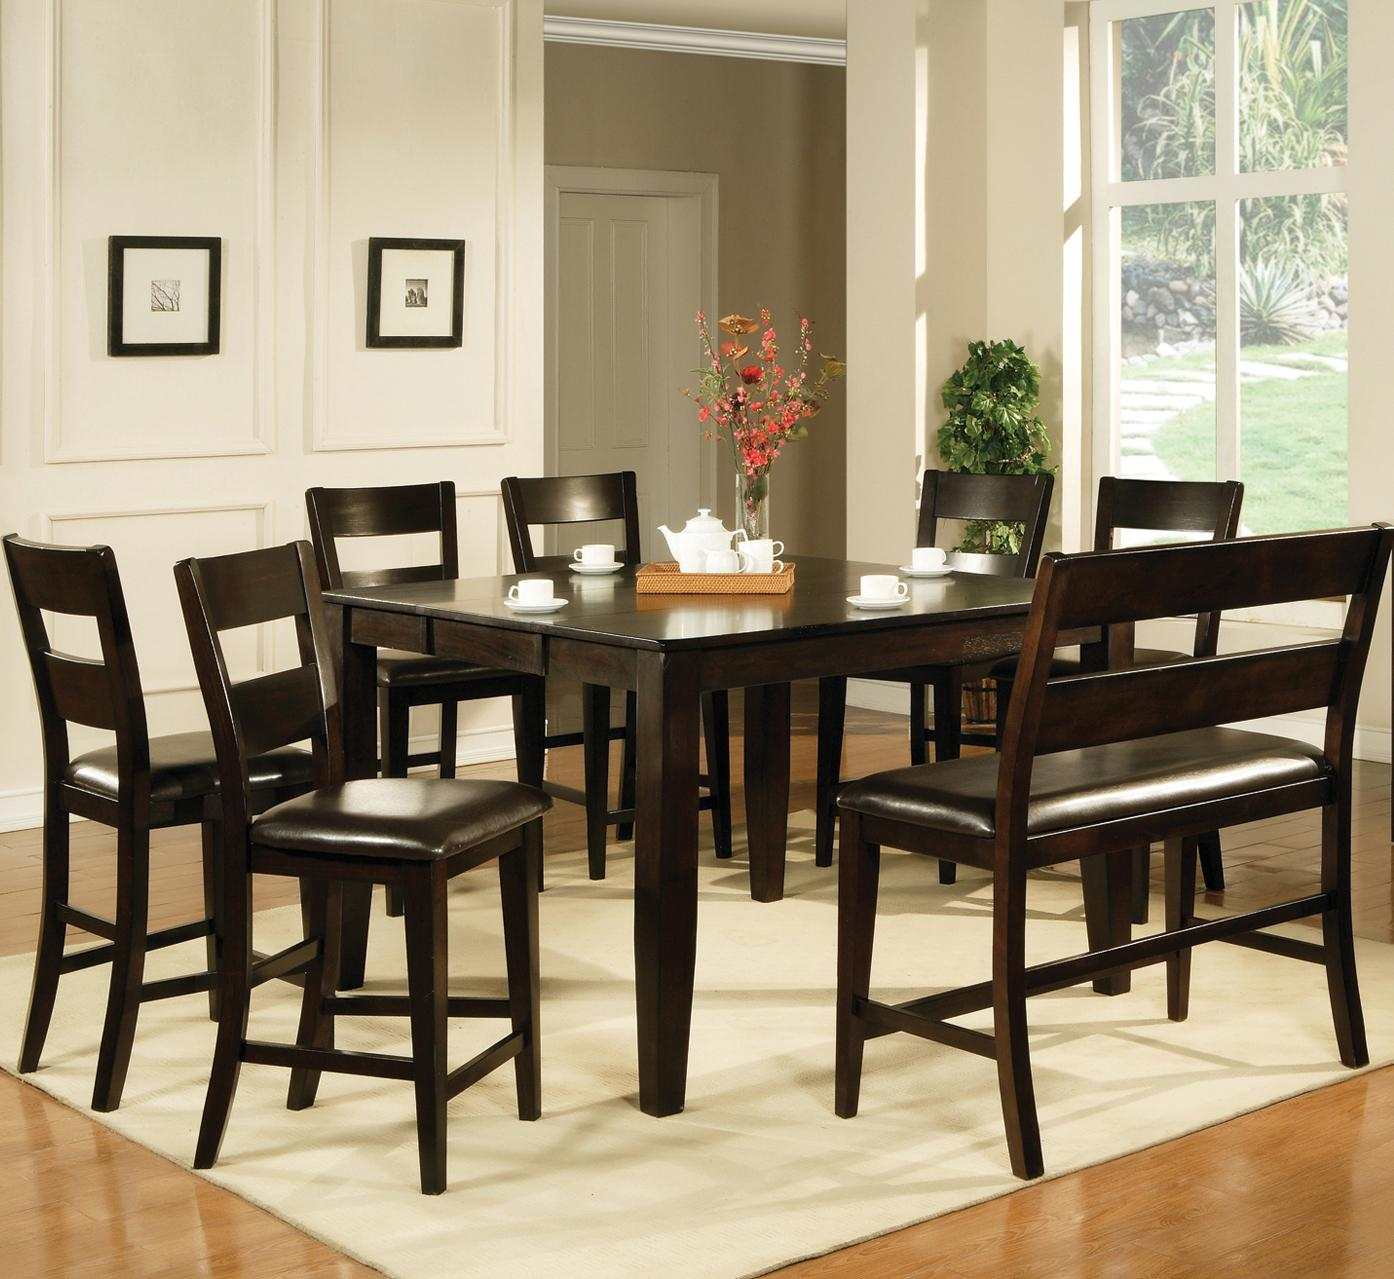 Dining Set For 8: Prime Victoria 8 Piece Counter Height Dining Set With